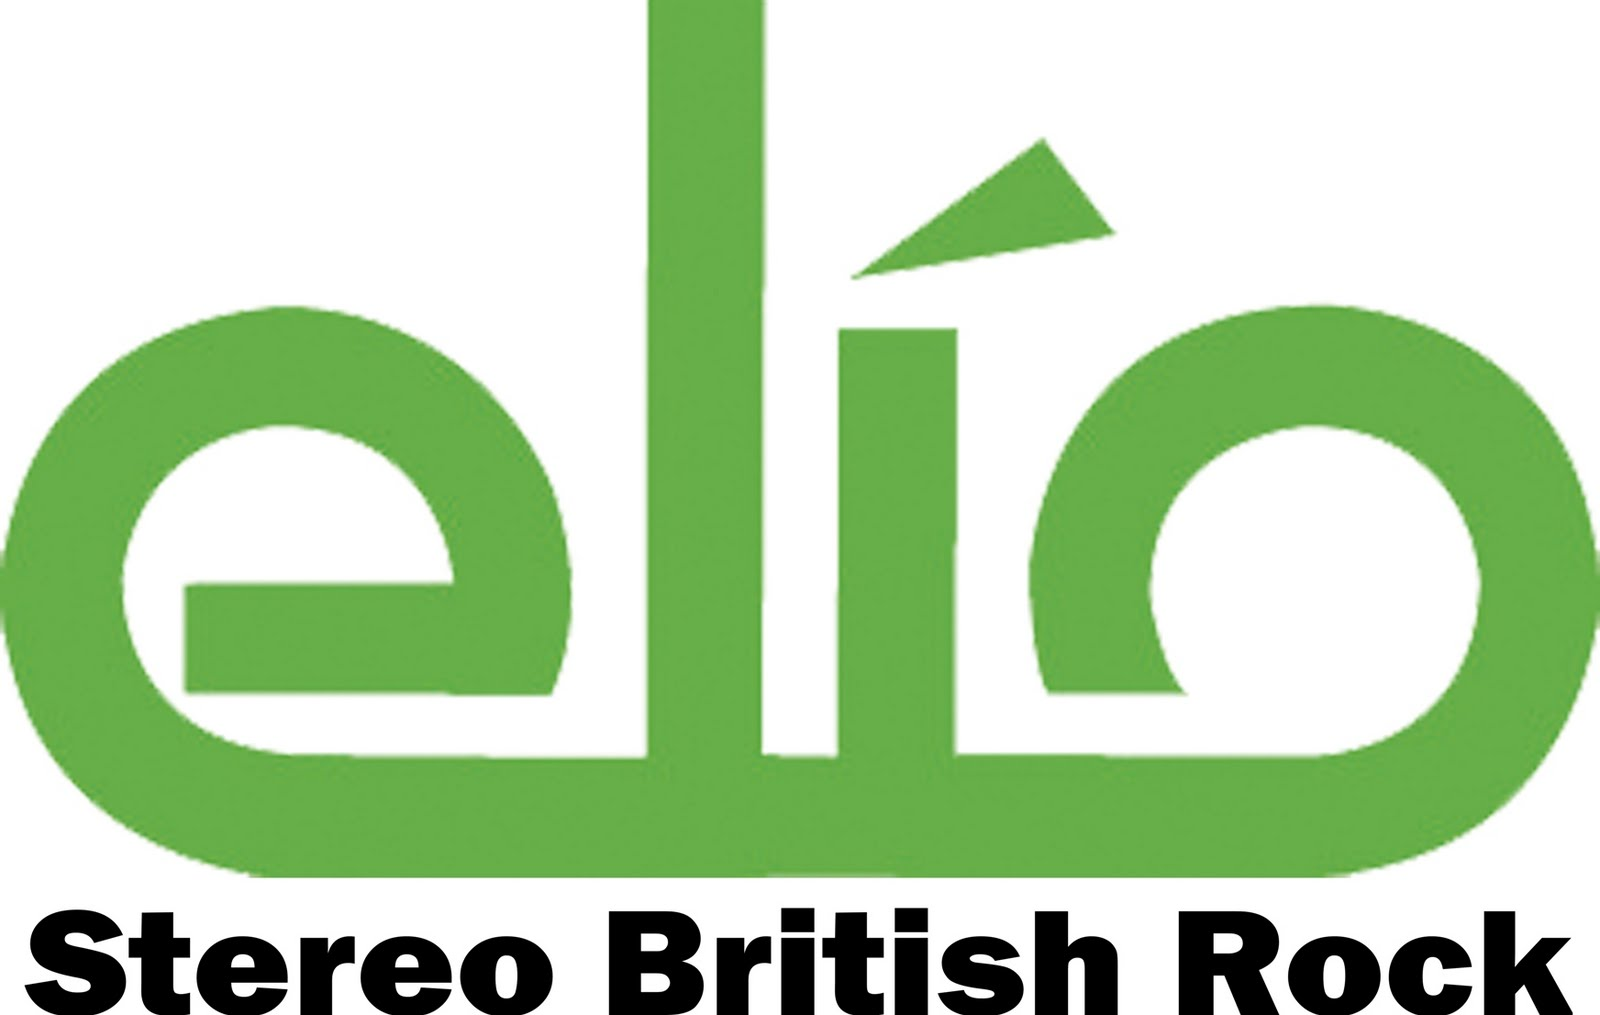 Stereo British Rock